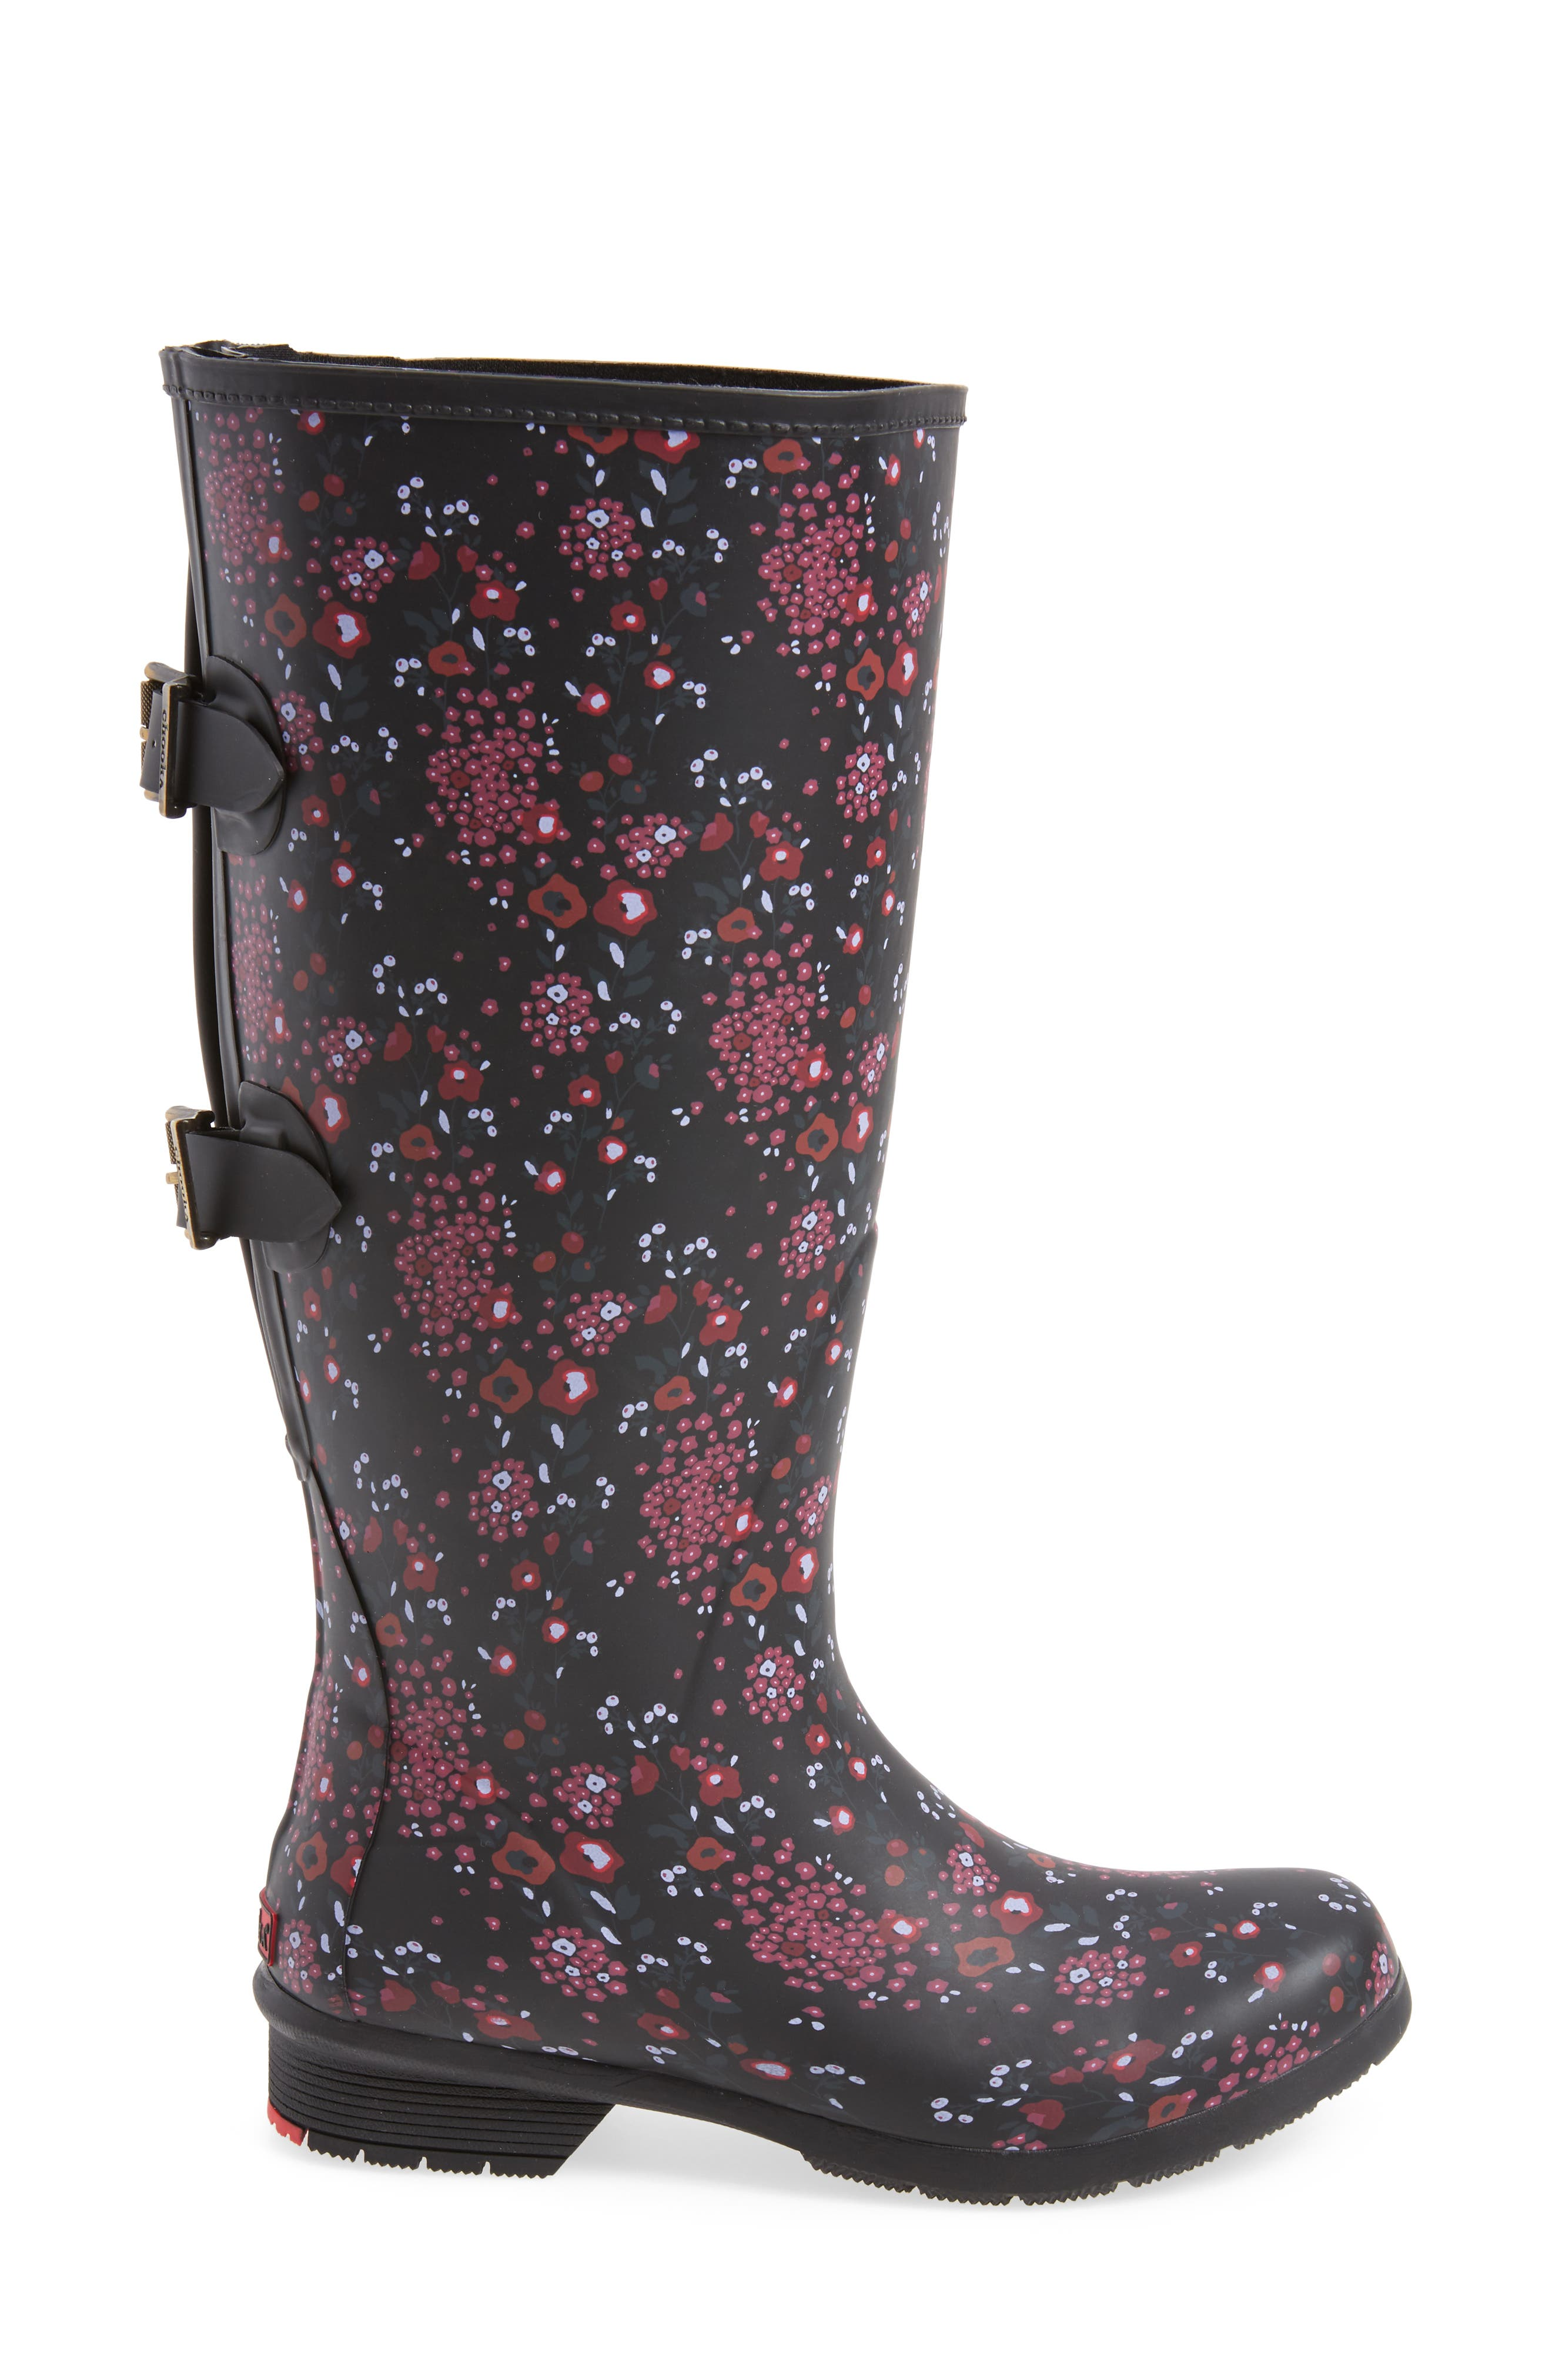 Alternate Image 3  - Chooka Versa Rain Boot (Women) (Wide Calf)